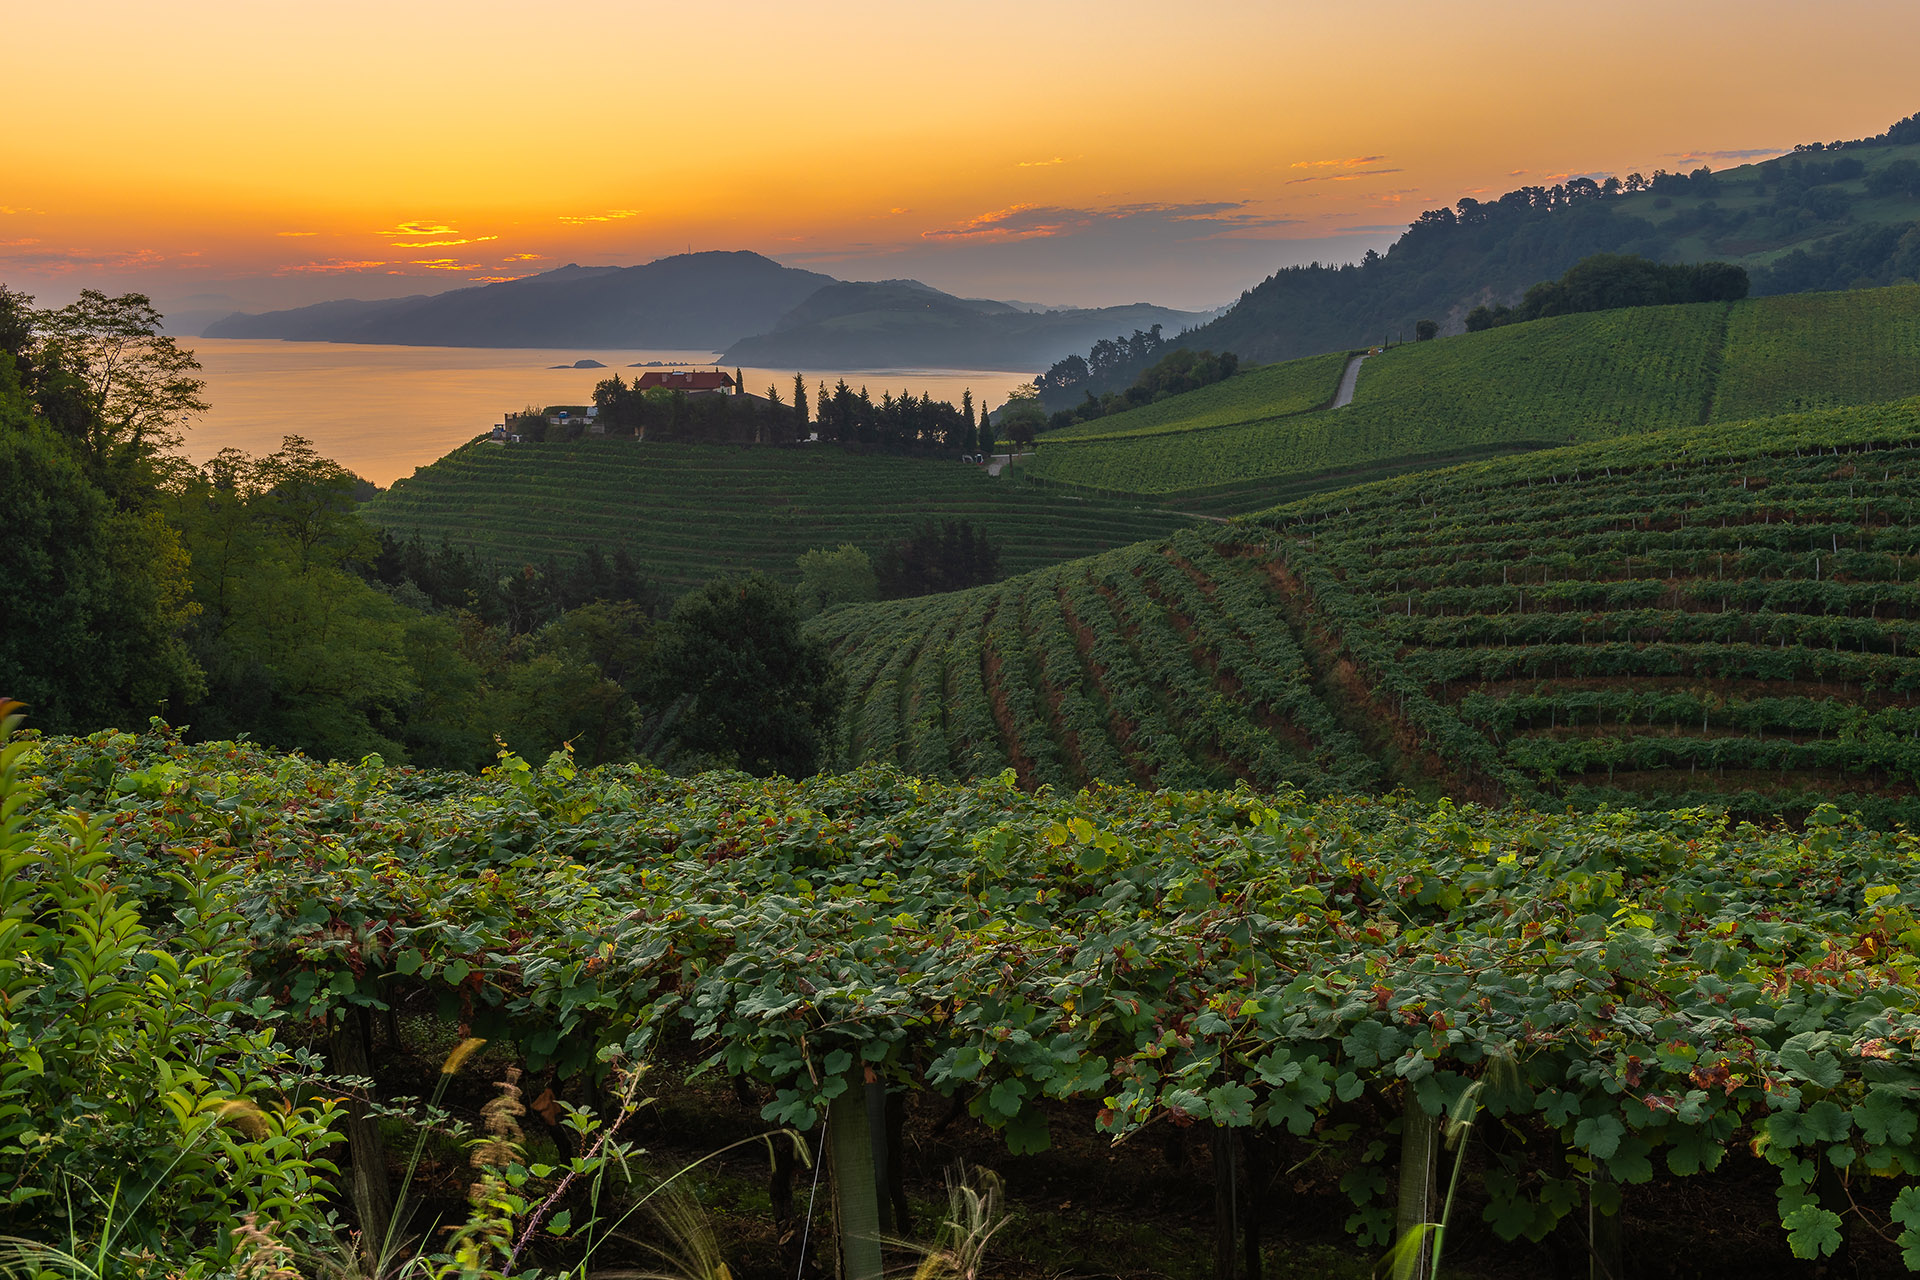 Txakoli vineyards at sunrise, Cantabrian sea in the background, Getaria in Basque Country, Spain